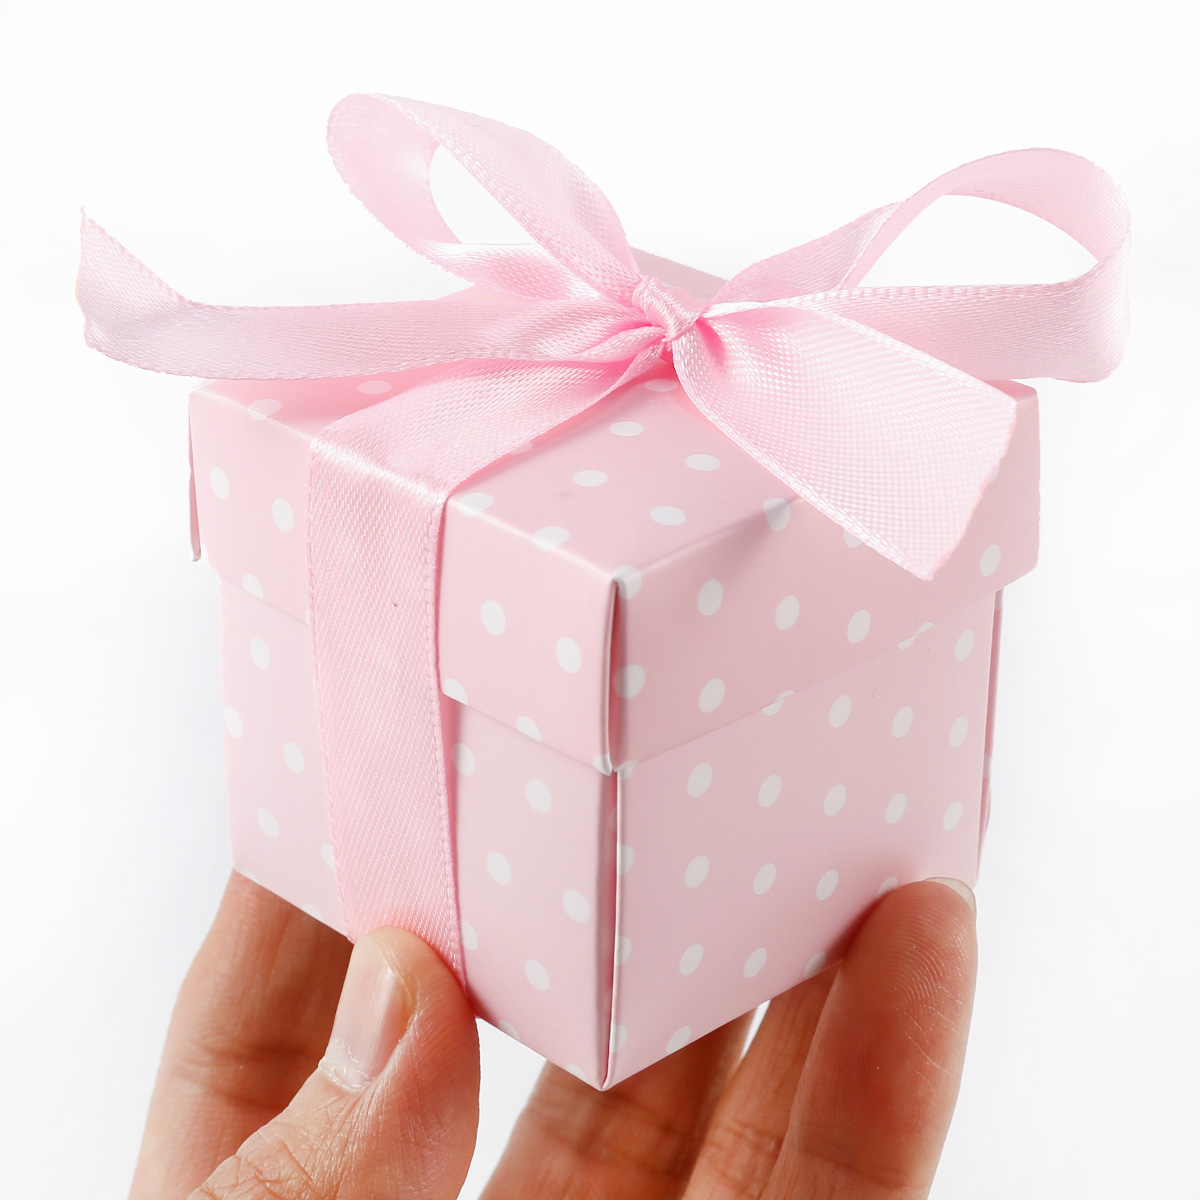 50x Polka Dots Spot Wedding Favor Baby shower Cake Gift Candy Boxes ...